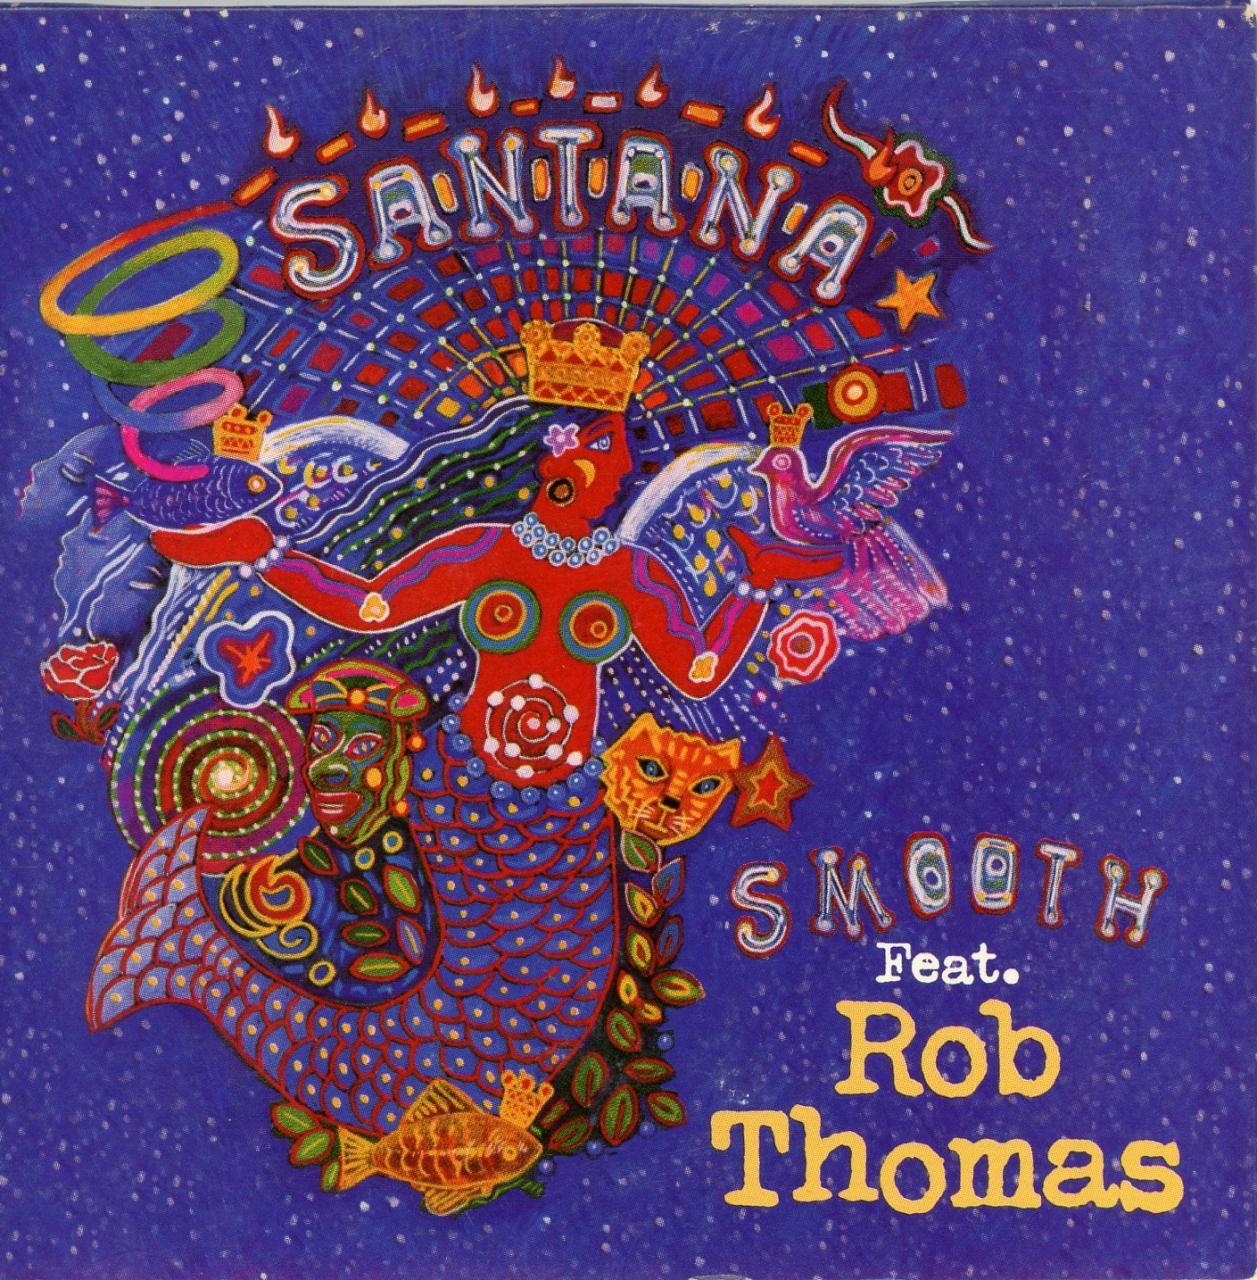 Santana Smooth (ft. Rob Thomas)